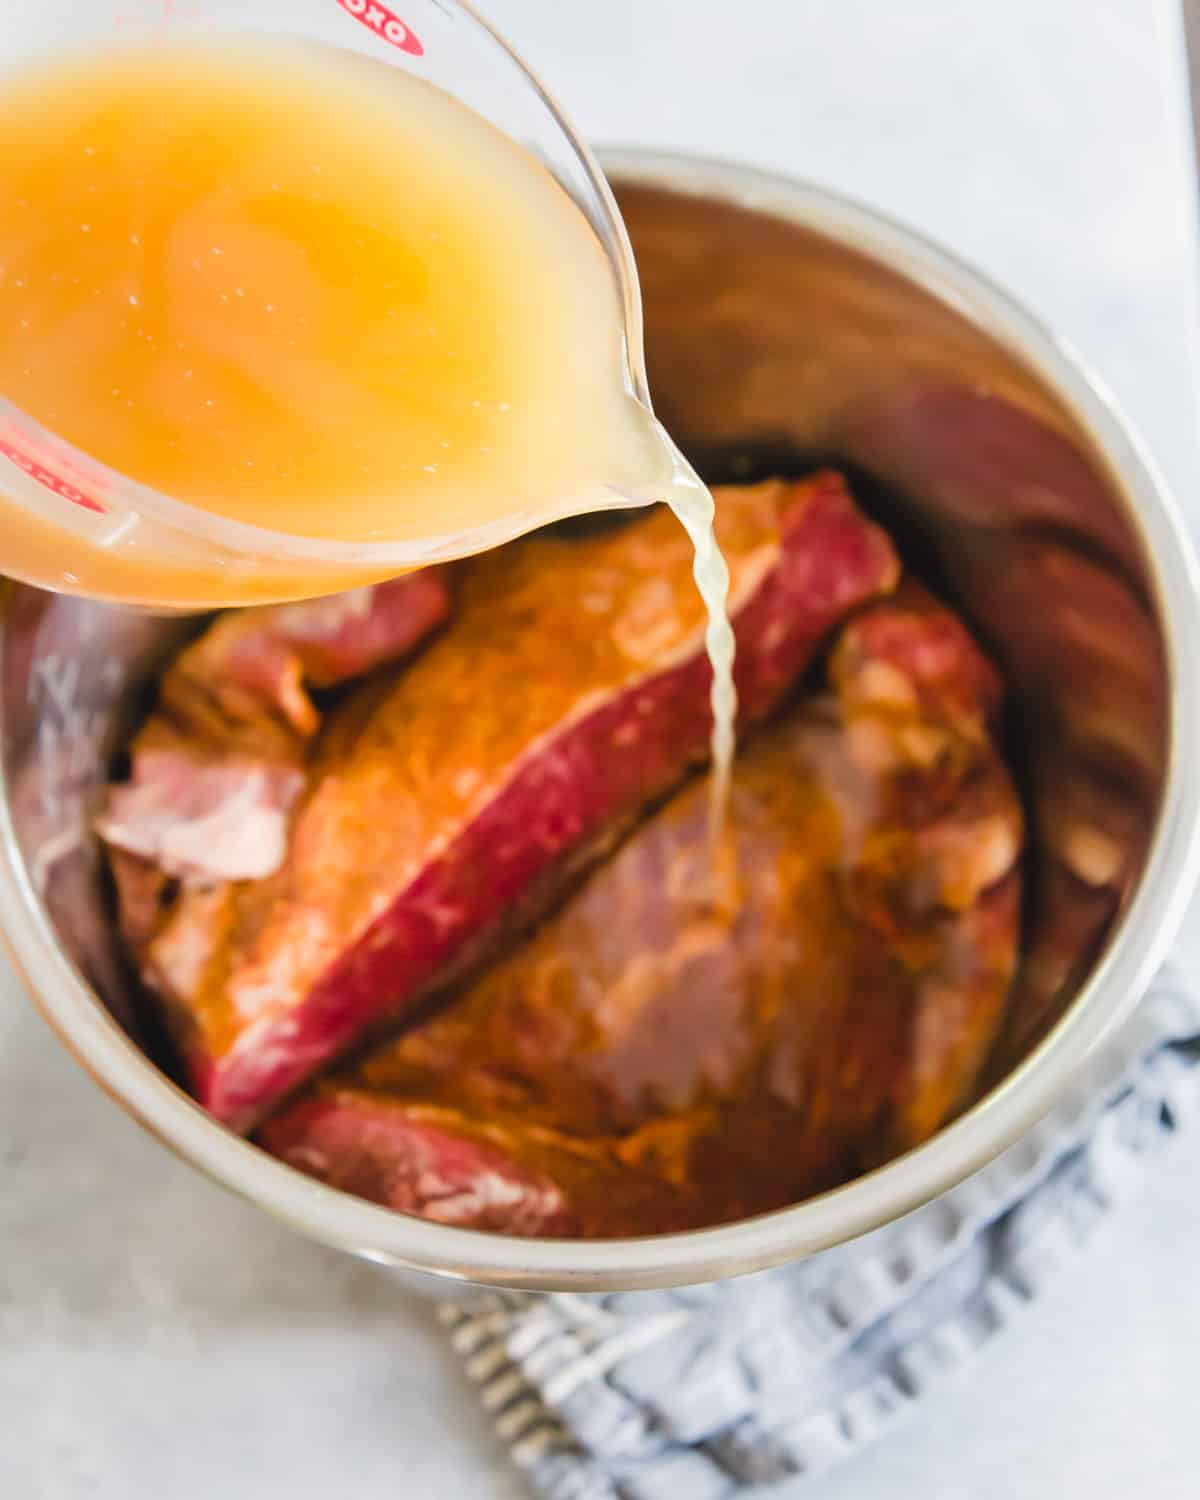 Beef broth is used as the cooking liquid for Instant Pot brisket.